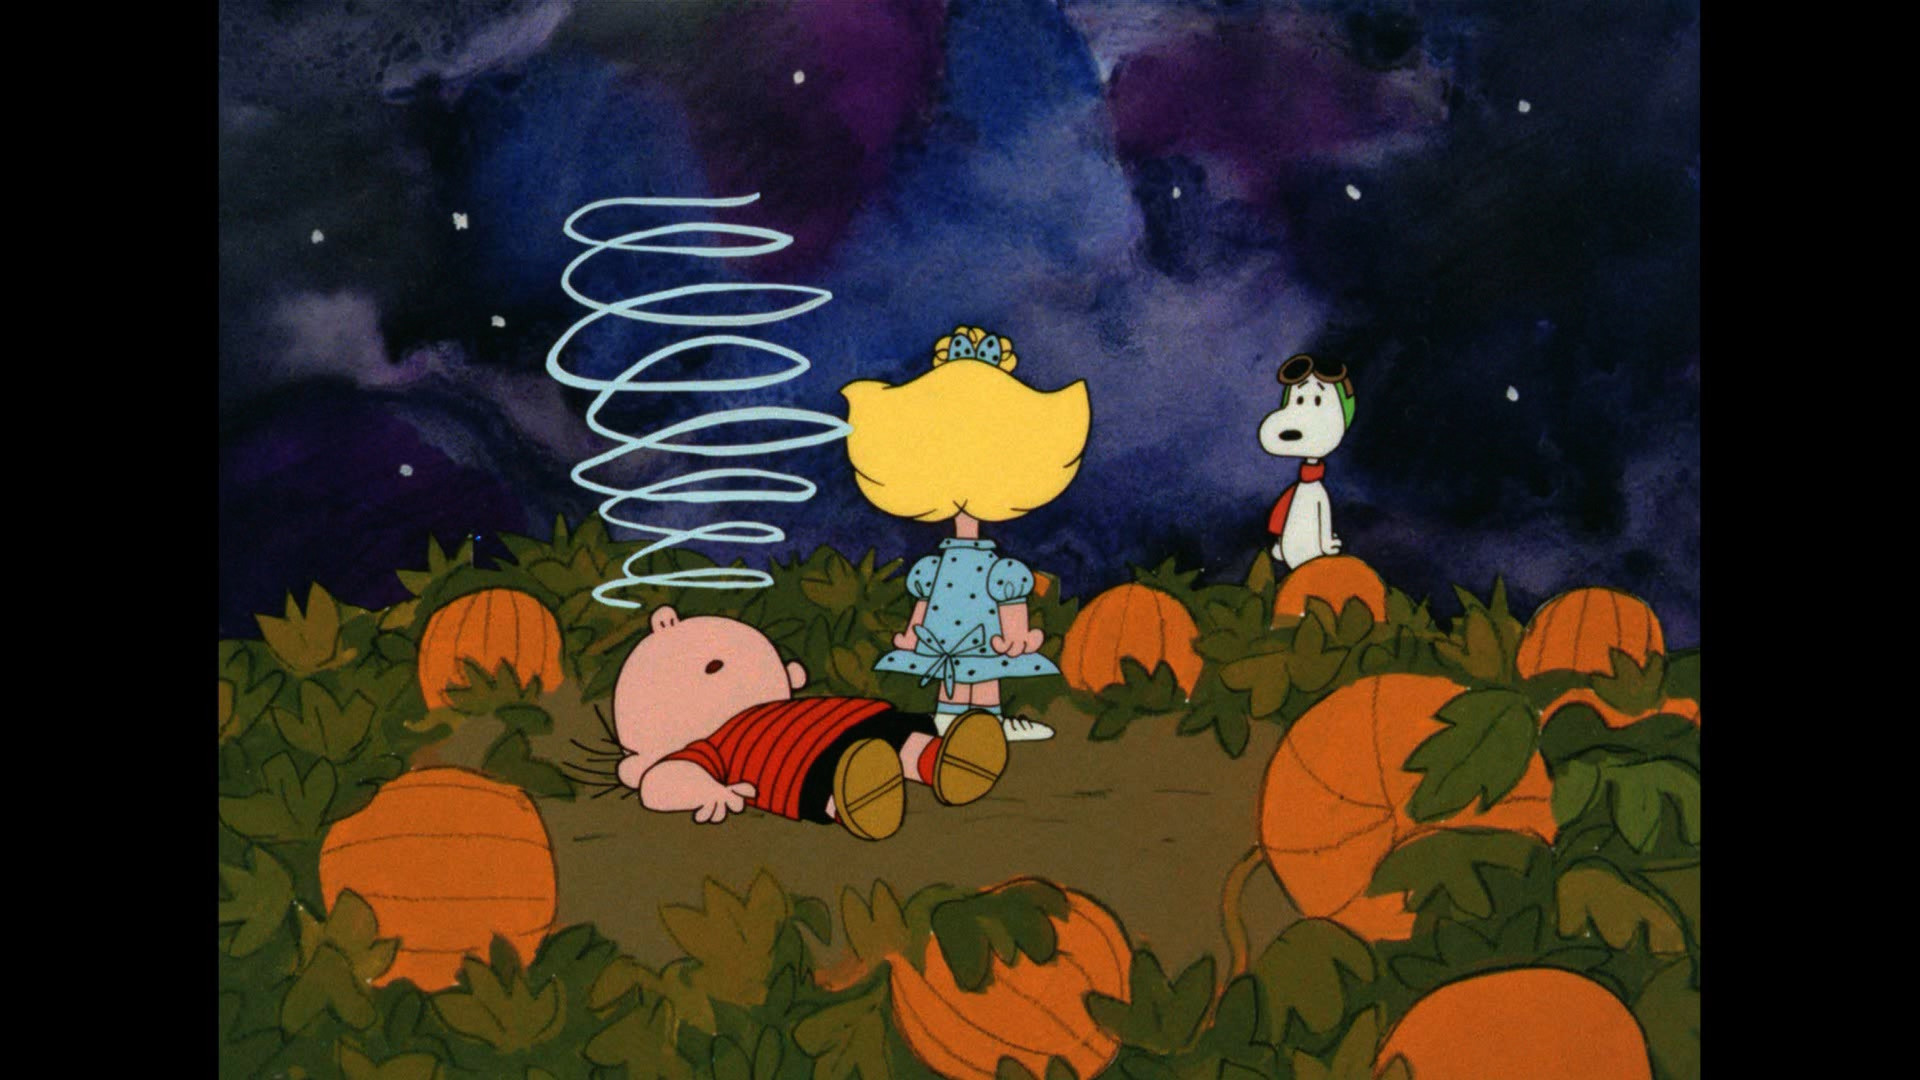 charlie brown halloween wallpaper - drive.cheapusedmotorhome